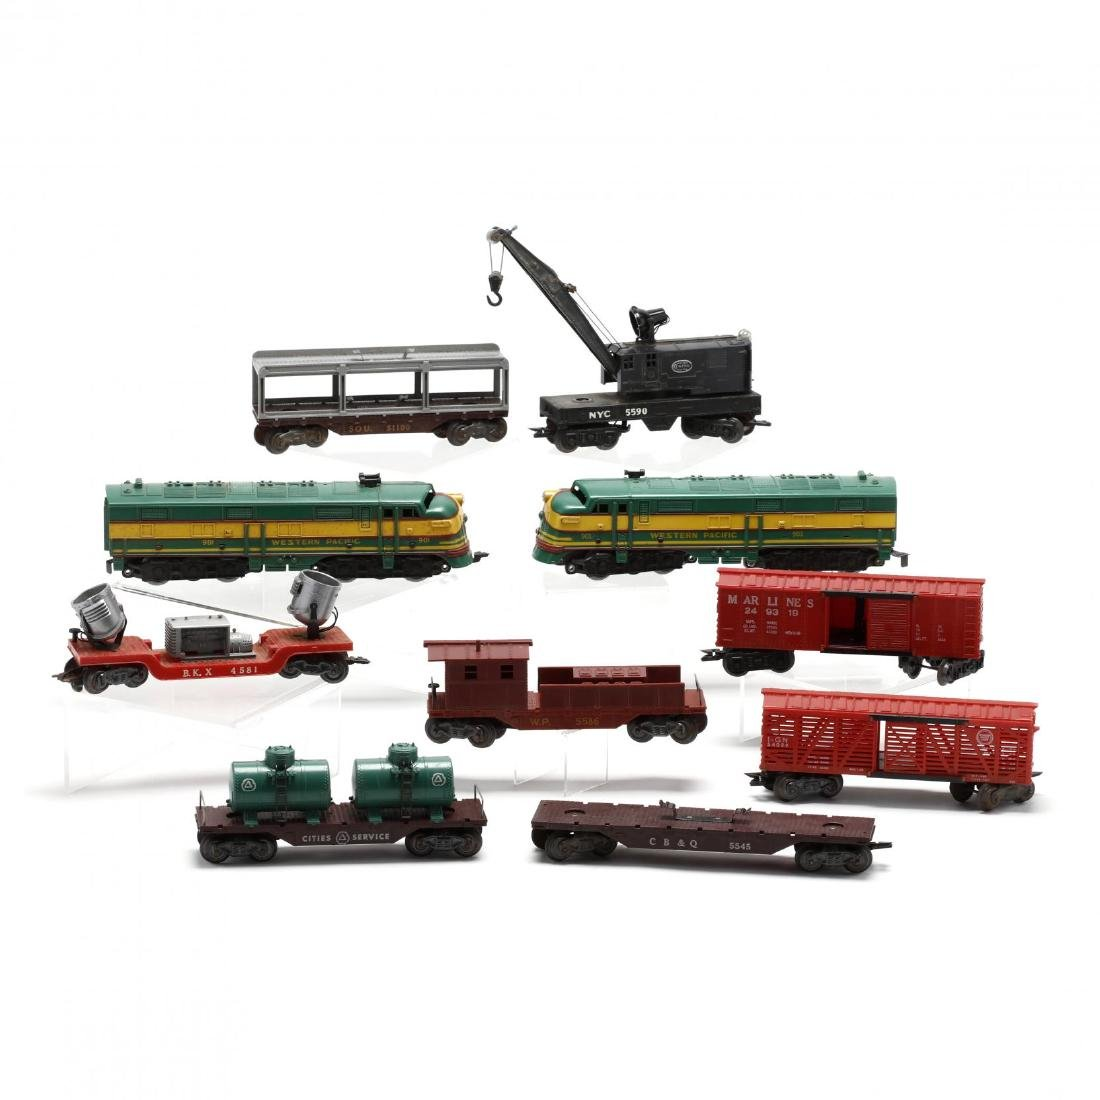 Group of Vintage Post War Toy Trains